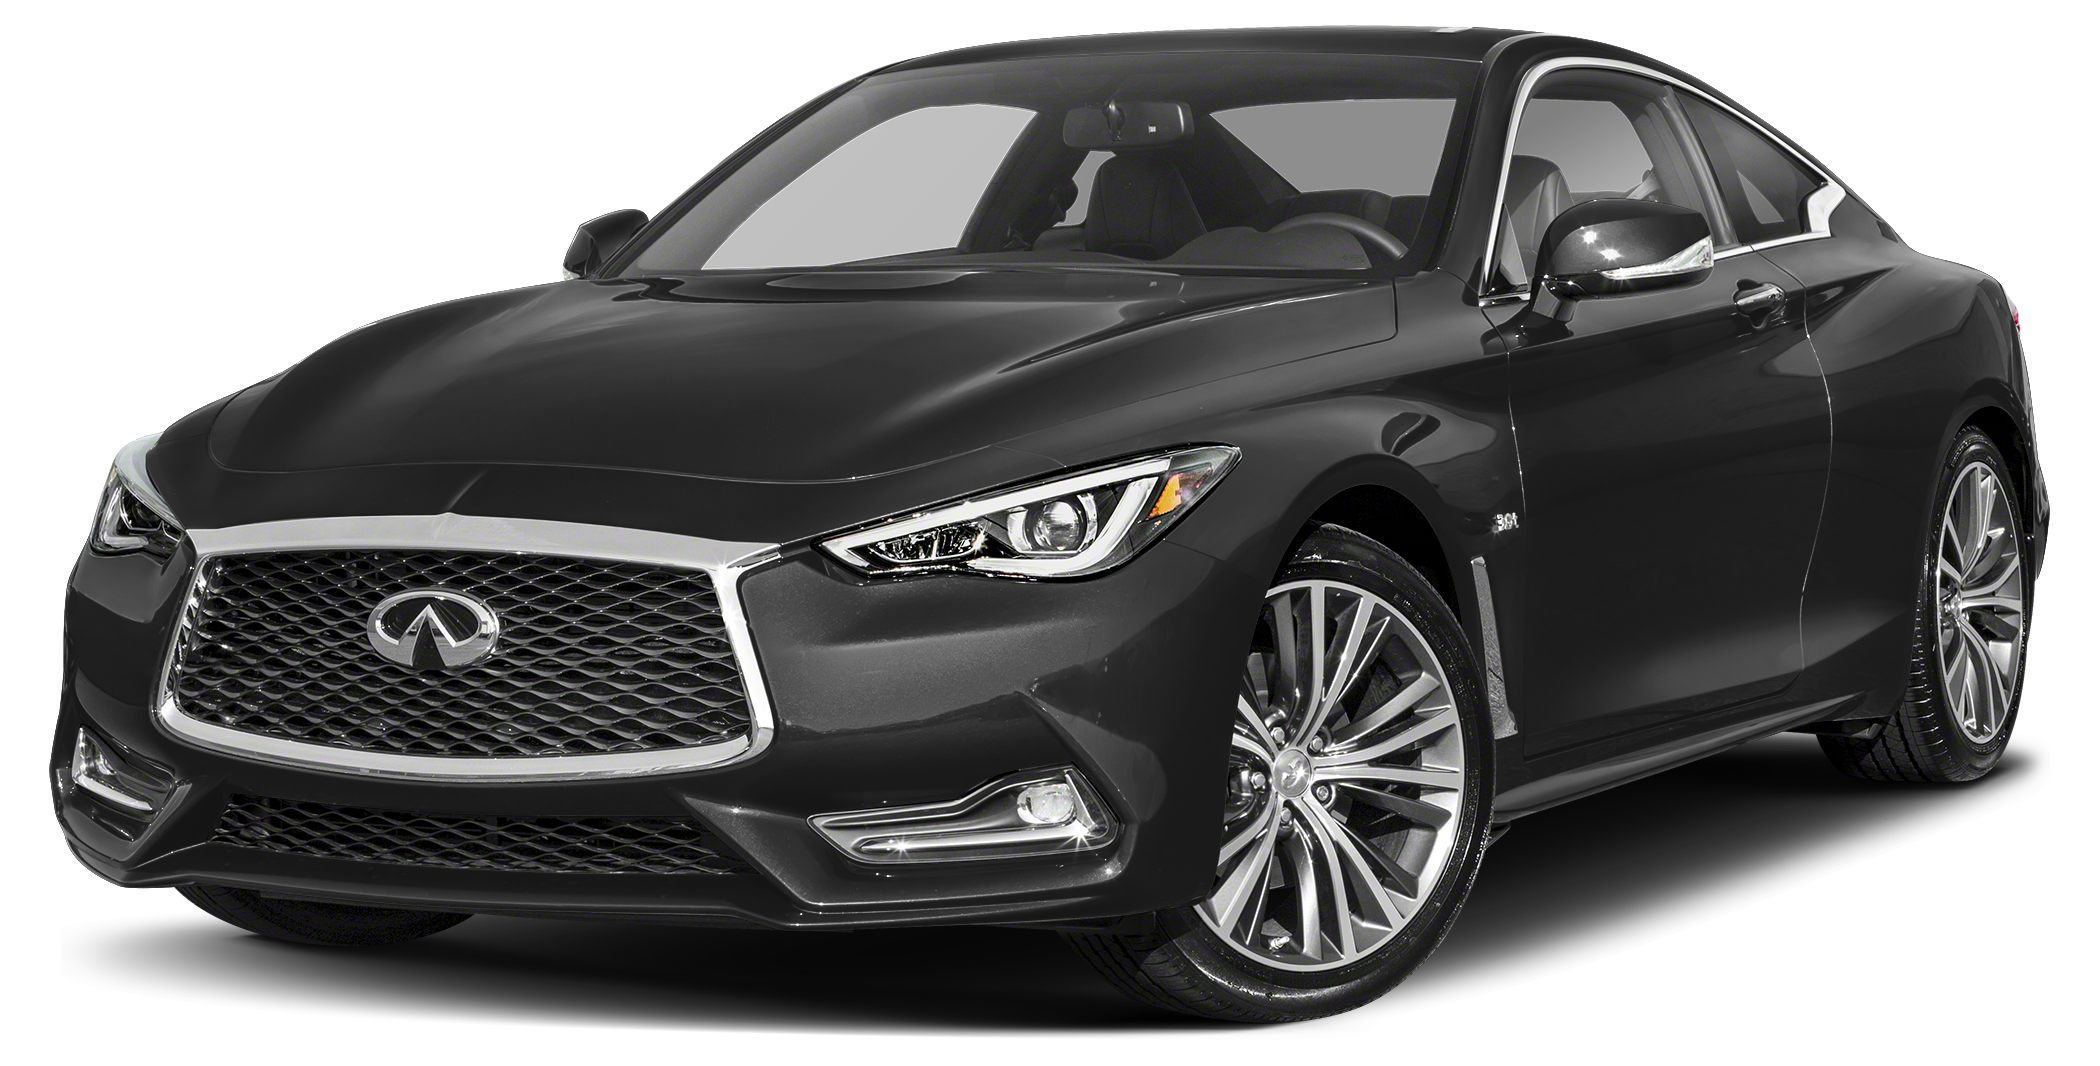 2018 INFINITI Q60 30T Red Sport 400 Optional equipment includes Carbon Fiber Rear Decklid Spoile